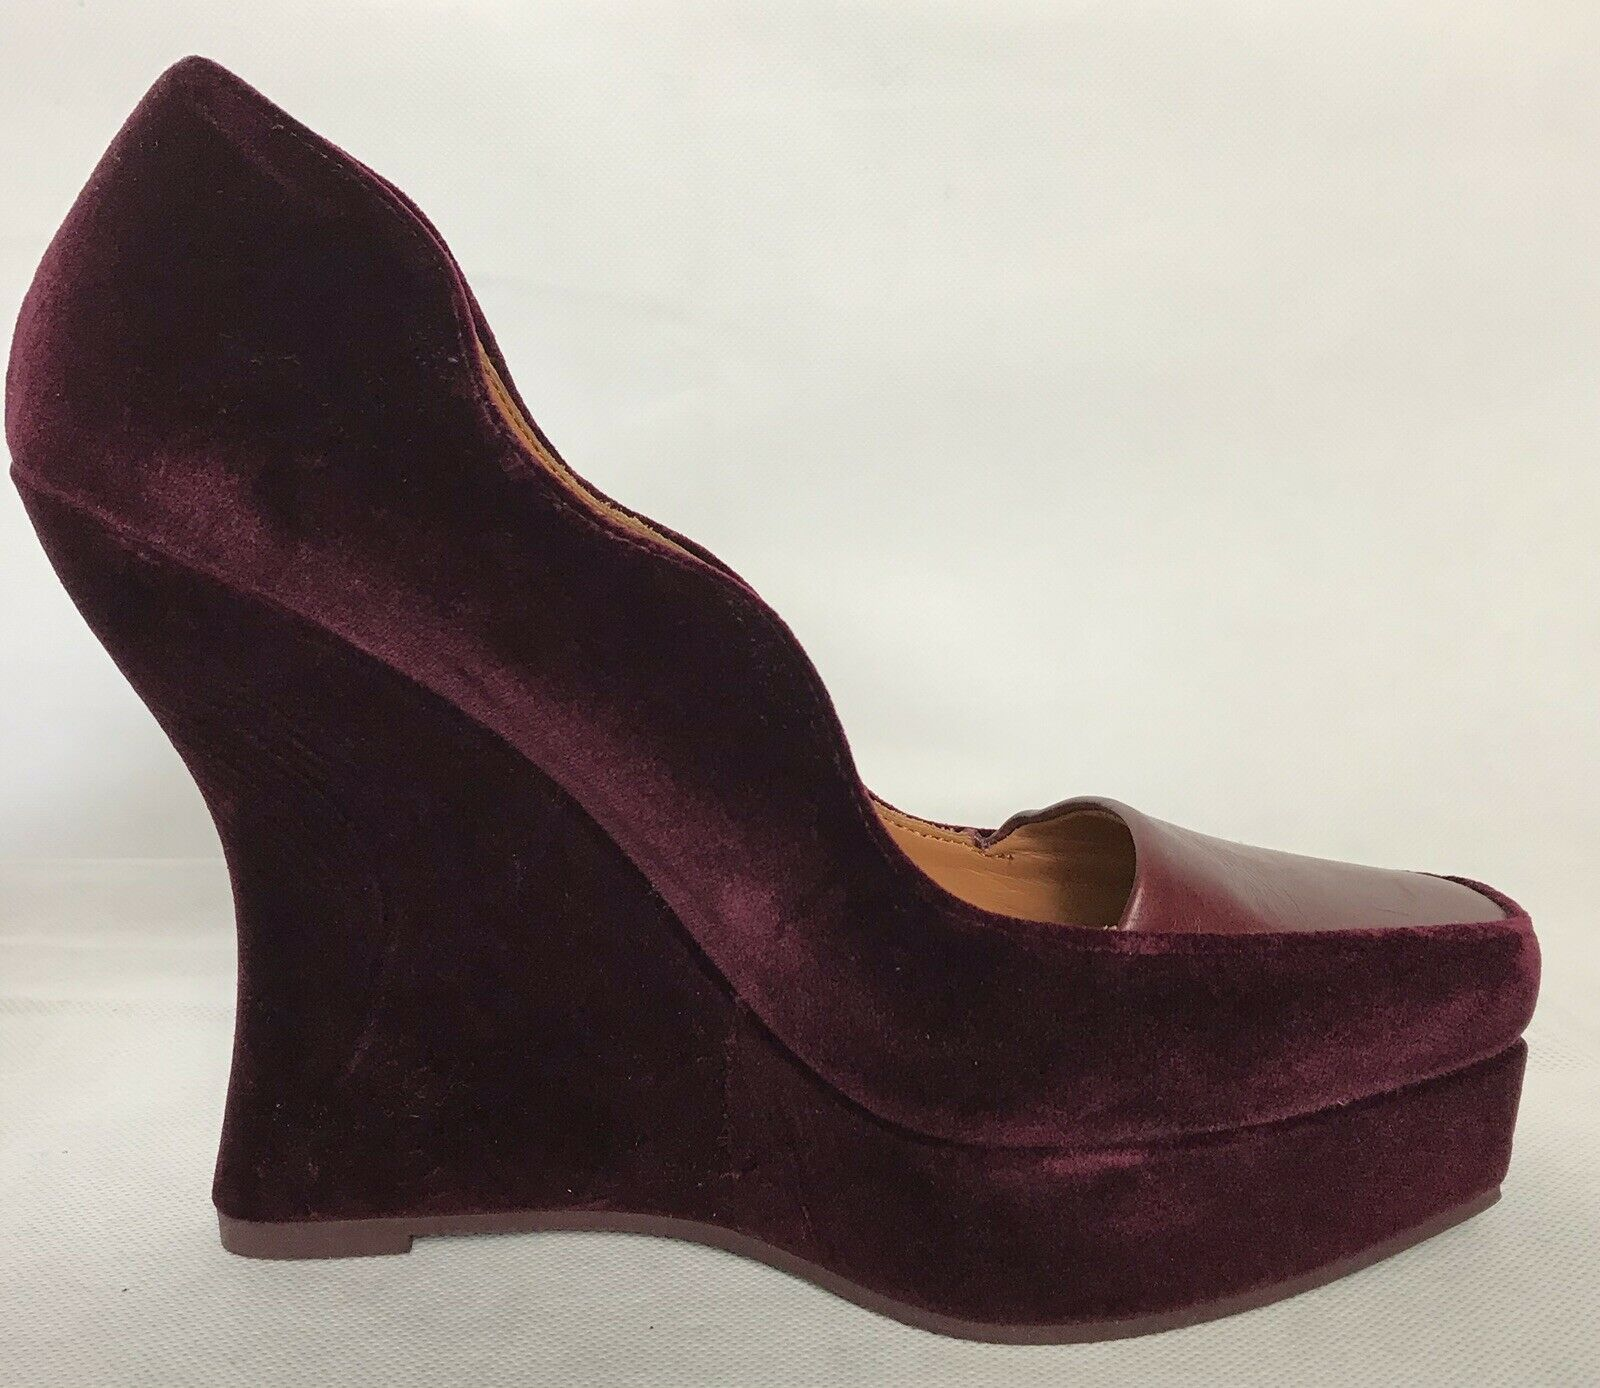 & Other Stories Boots Burgundy Burgundy Burgundy great condition 0c9165